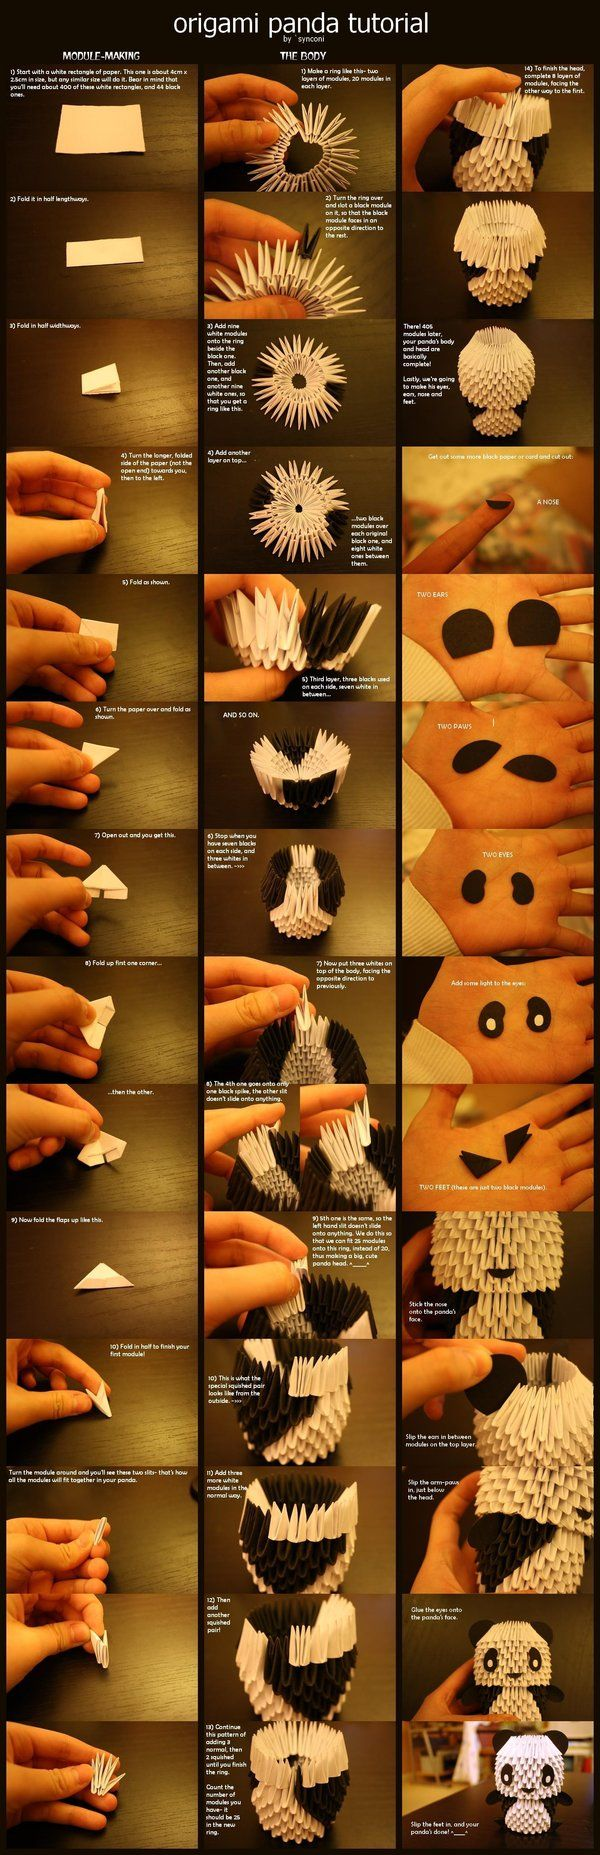 Origami Panda Tutorial- takes a lot of patience to do this! But fun and easy to do!